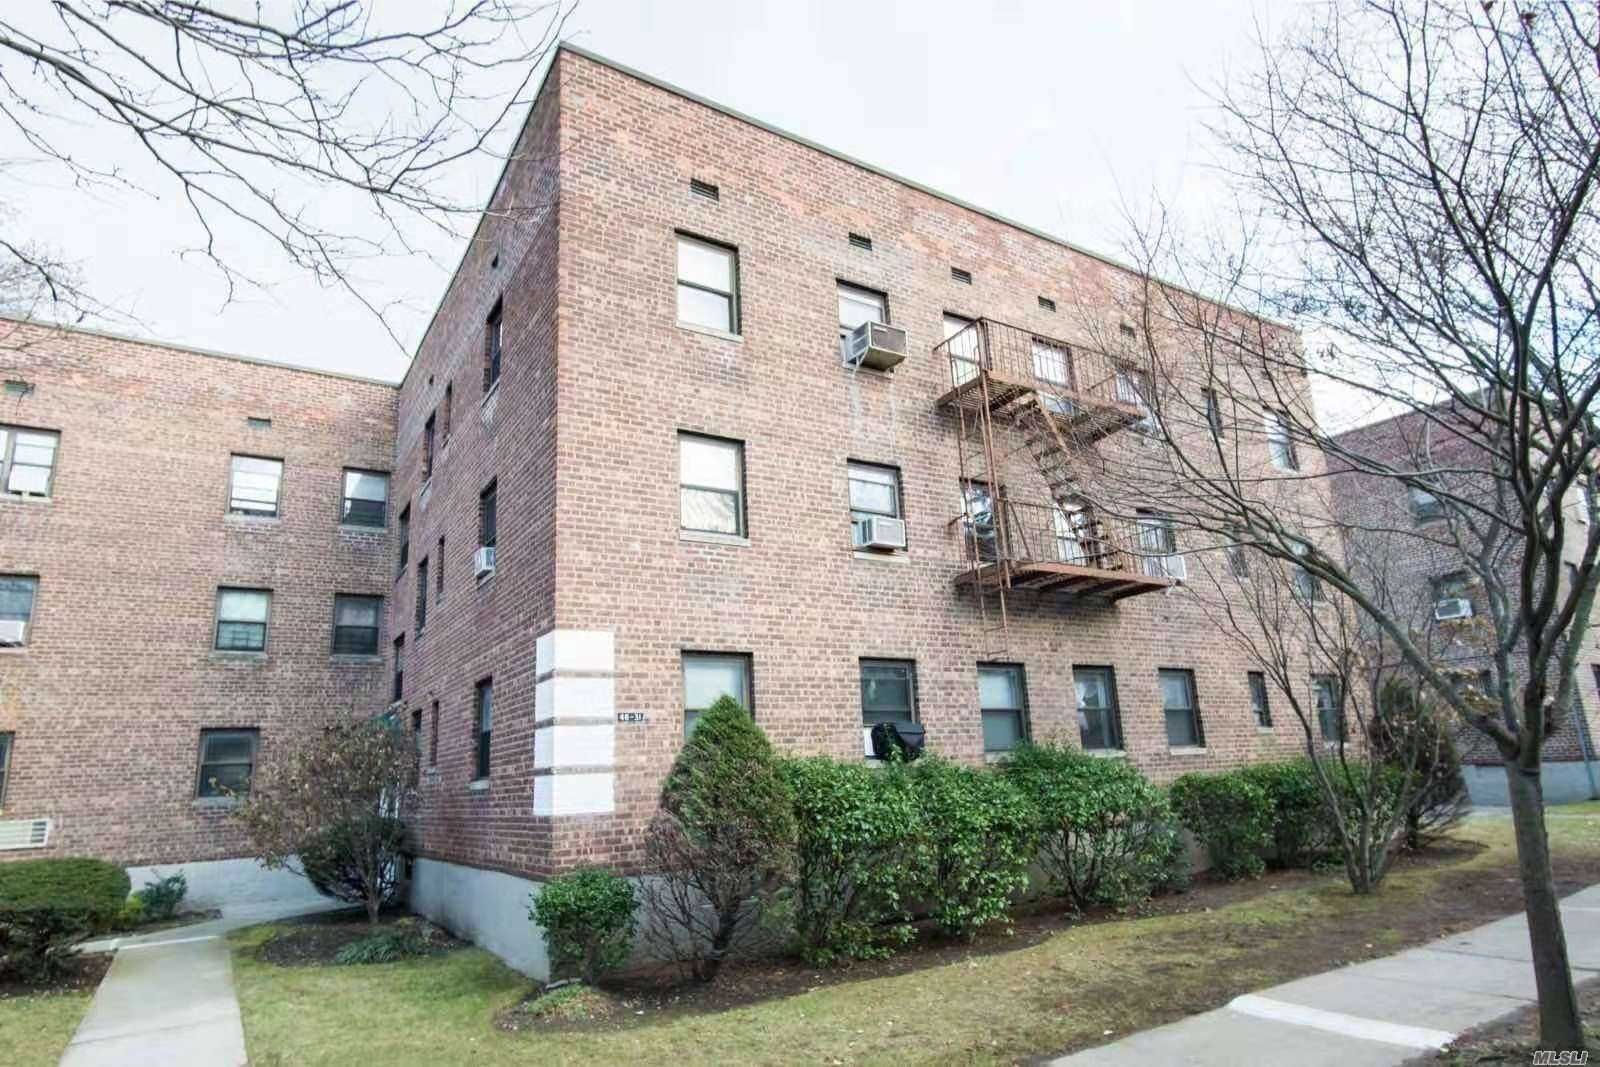 Very Nice 2-Bedroom Apartment On The 1st Floor. No Need To Wait For Elevator Or Climb Stairs! Featuring Wood Flooring Throughout And In Unit Washer & Dryer. Located On Tree Lined Streets Of Bayside In School District 26. (P.S.203, J.H.S.158, Cardozo H.S.) Near Bell Blvd & Northern Blvd For Supermatkets, Restaurants, Coffee/Donut Shop, Pharmacys, Banks, Library And Much More. Q12 & 27 Buses To Downtown Flushing.